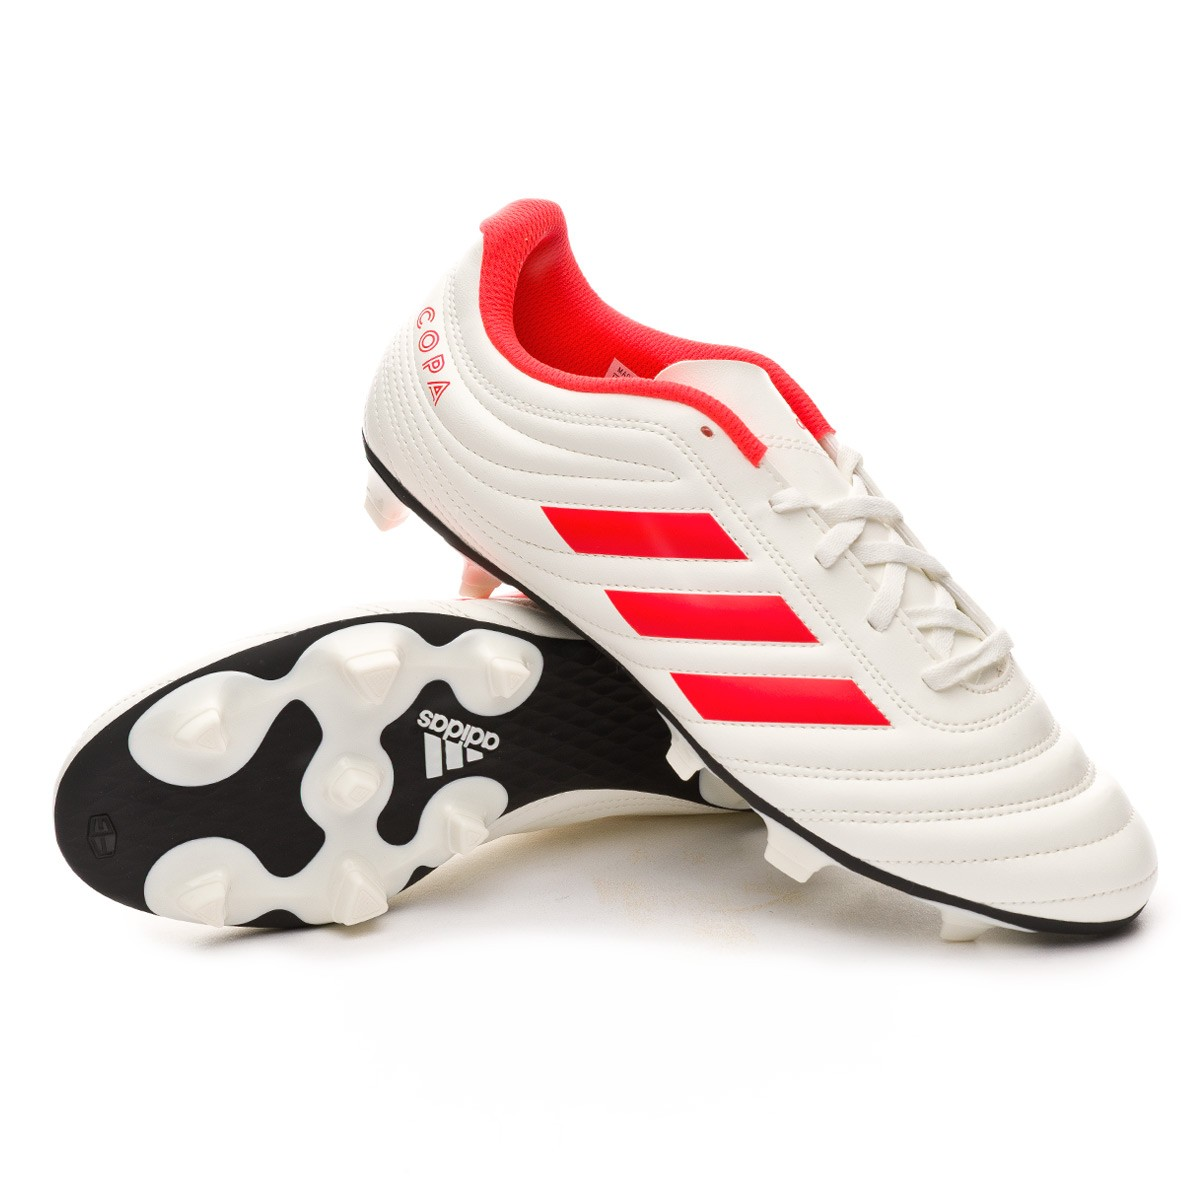 024ad3a16b4de Football Boots adidas Copa 19.4 FG Off white-Solar red-Off white - Football  store Fútbol Emotion